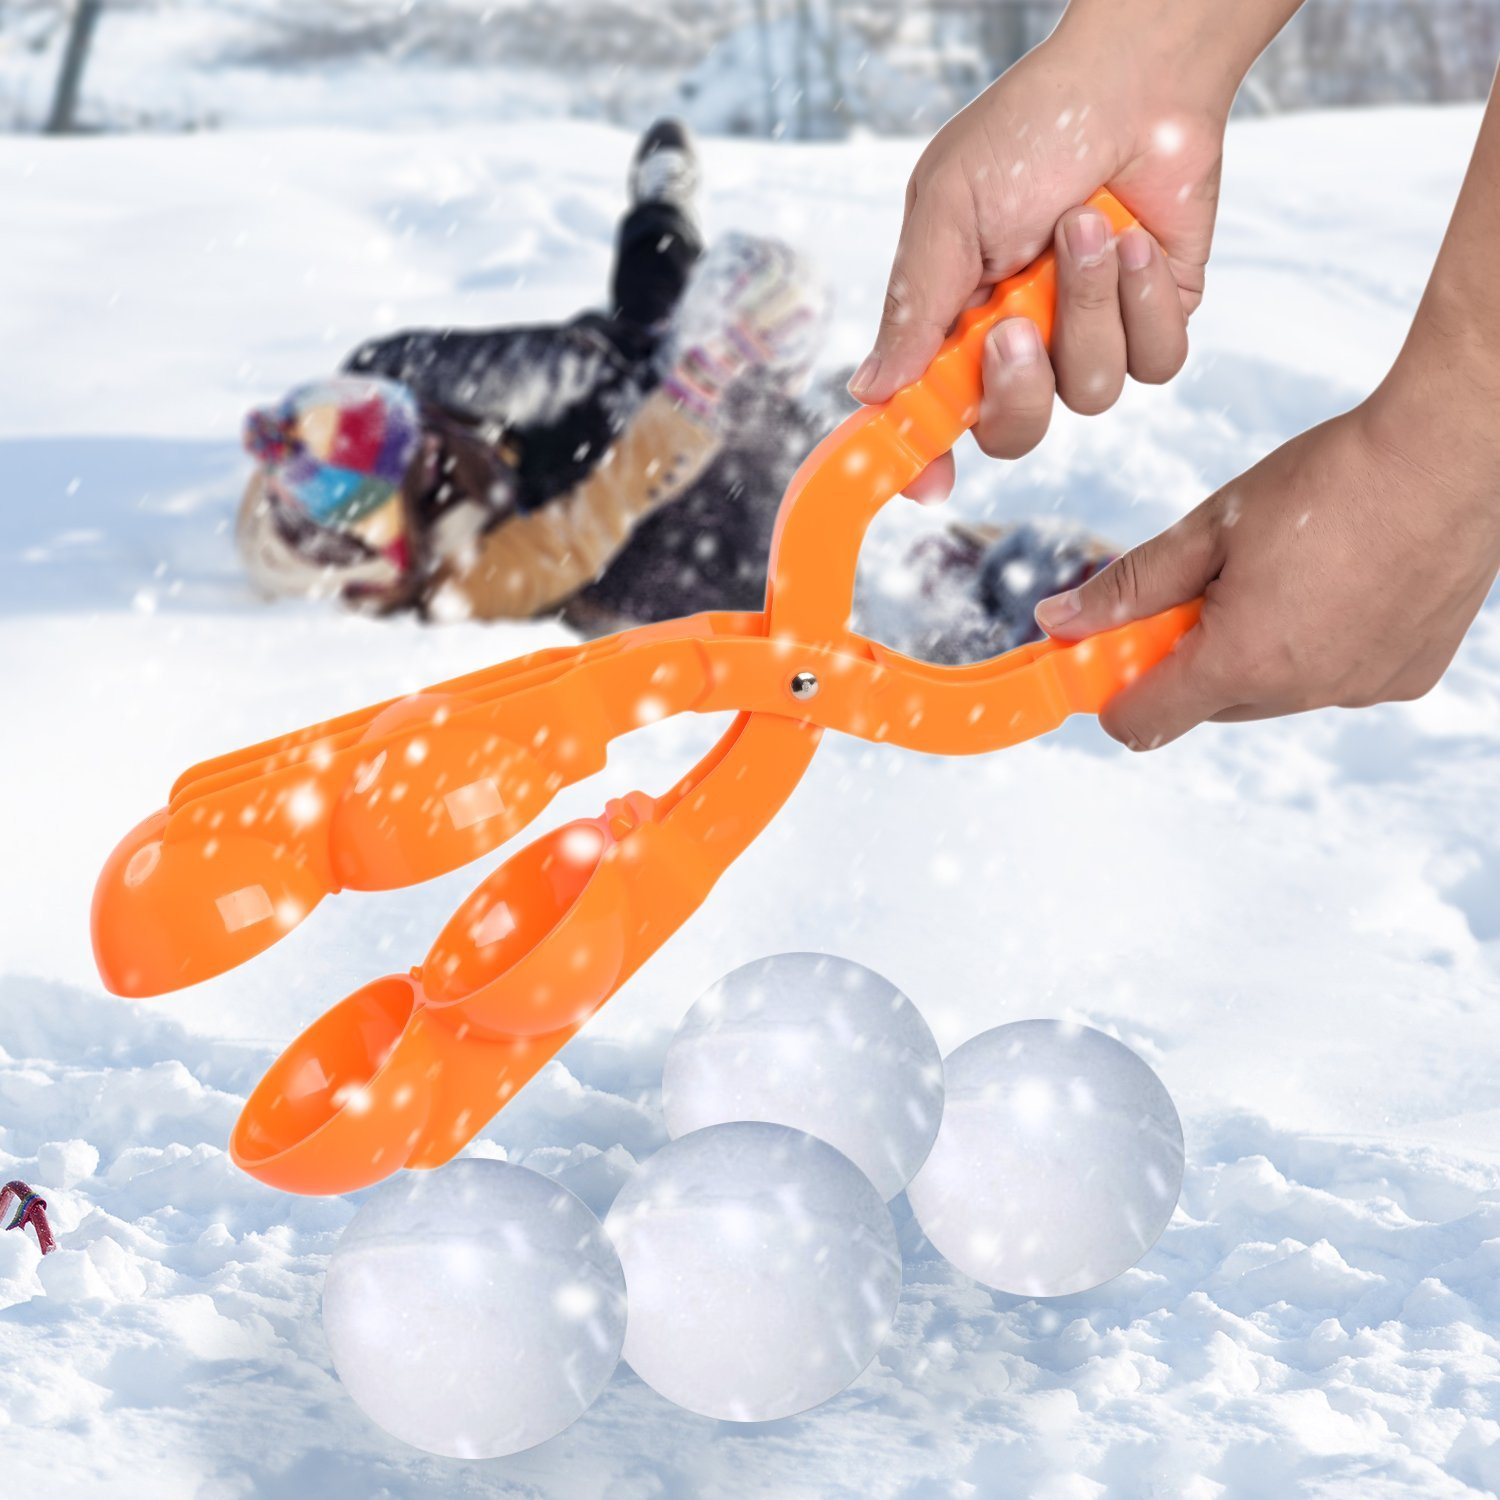 CWLAKON Two Snowball Makers,Perfect Outdoor Play Snow Toys for Kids,Two Balls Let You Make Snowballs Quickly(Random 2 Colors) by CWLAKON (Image #5)